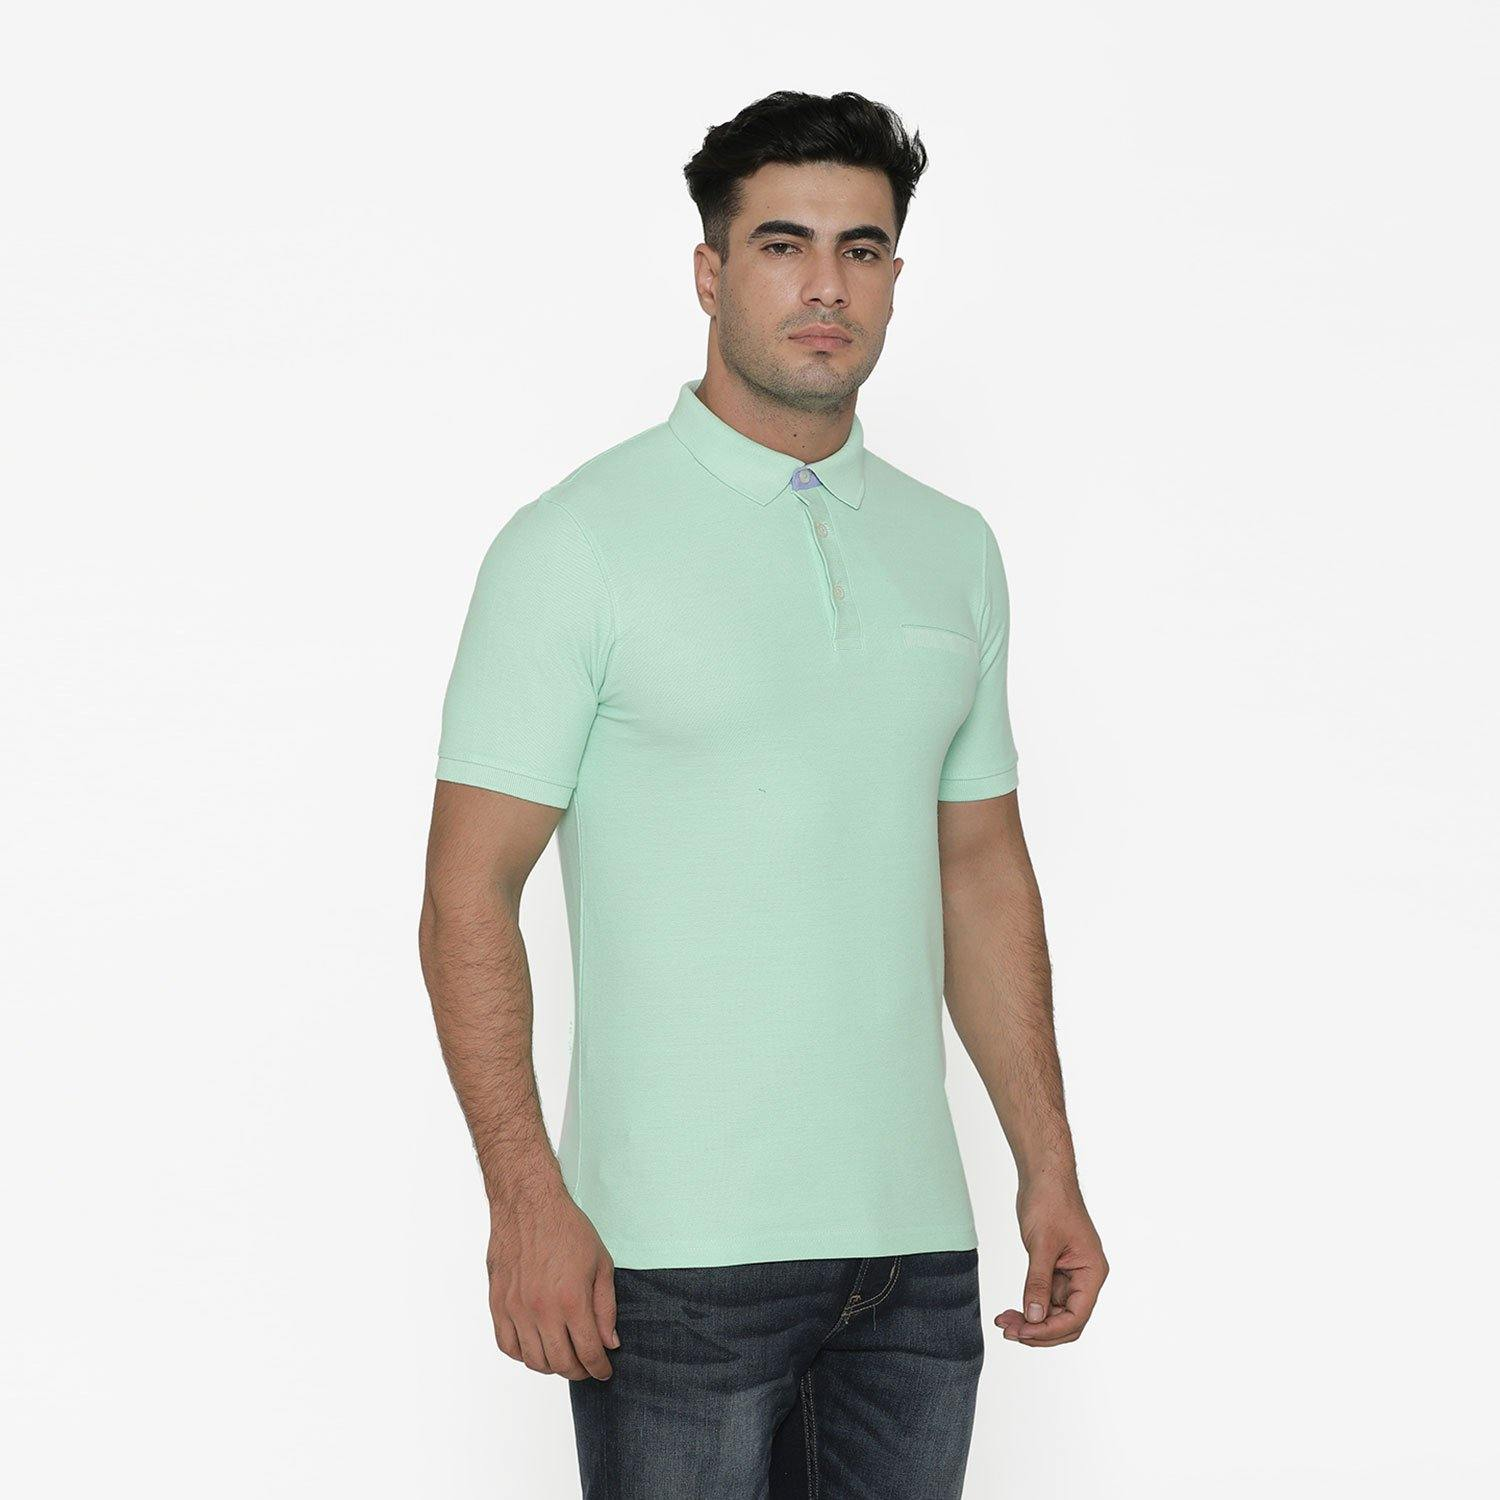 Men's Stylish Polo - Neck T - Shirt For Summer